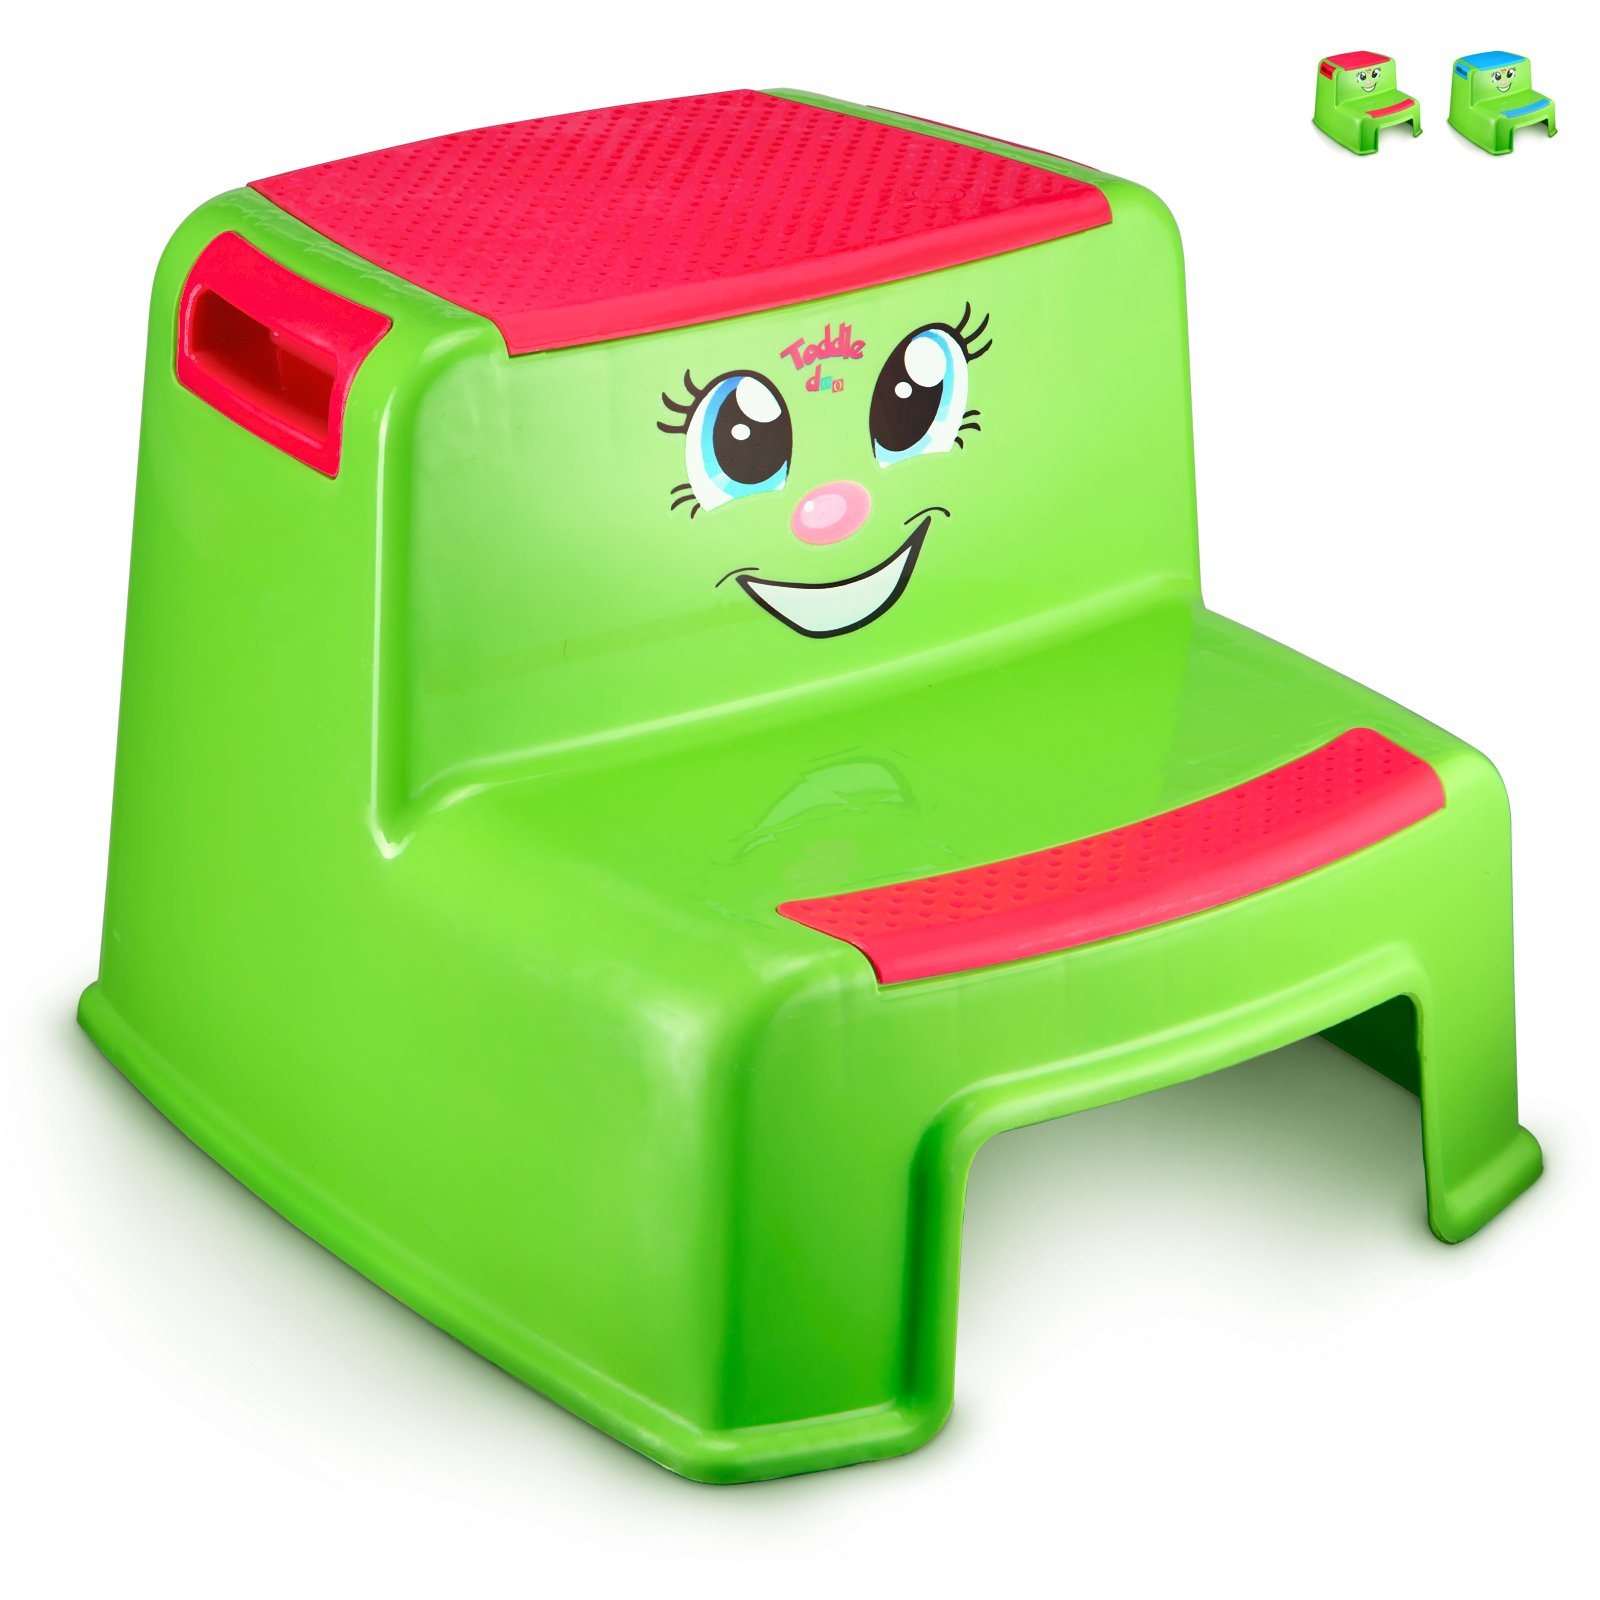 Best rated in toilet. Ladder clipart step stool